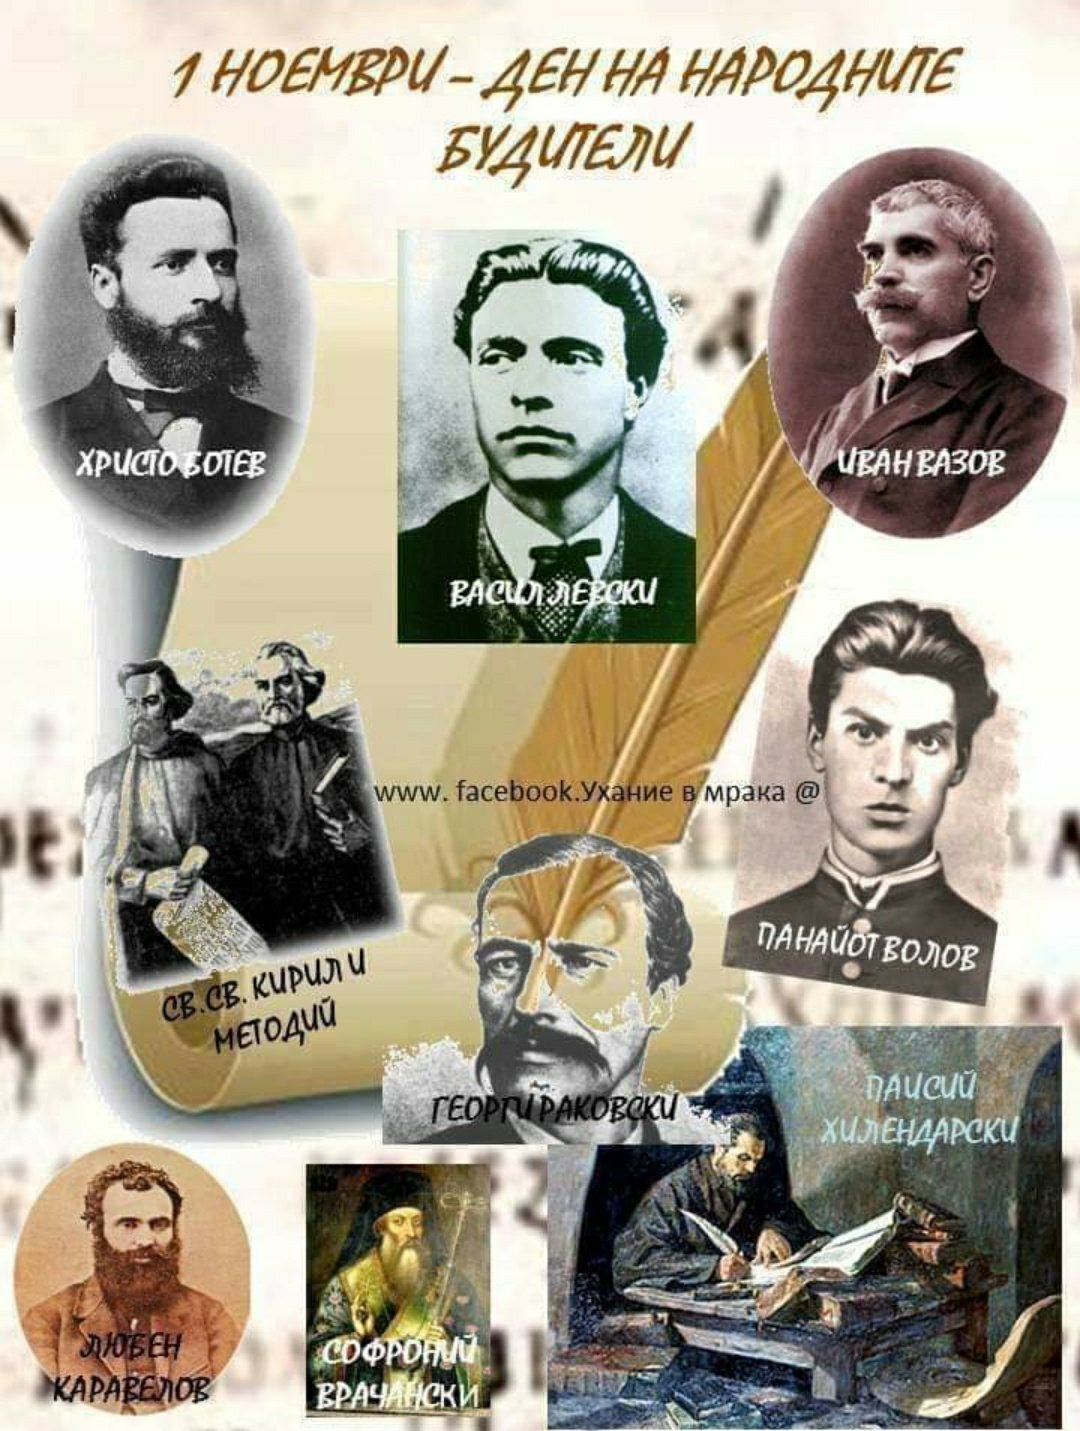 Picture of portraits of Bulgarian national leaders throughout the centuries including Hristo botev, panayot volov and Vasil Levski